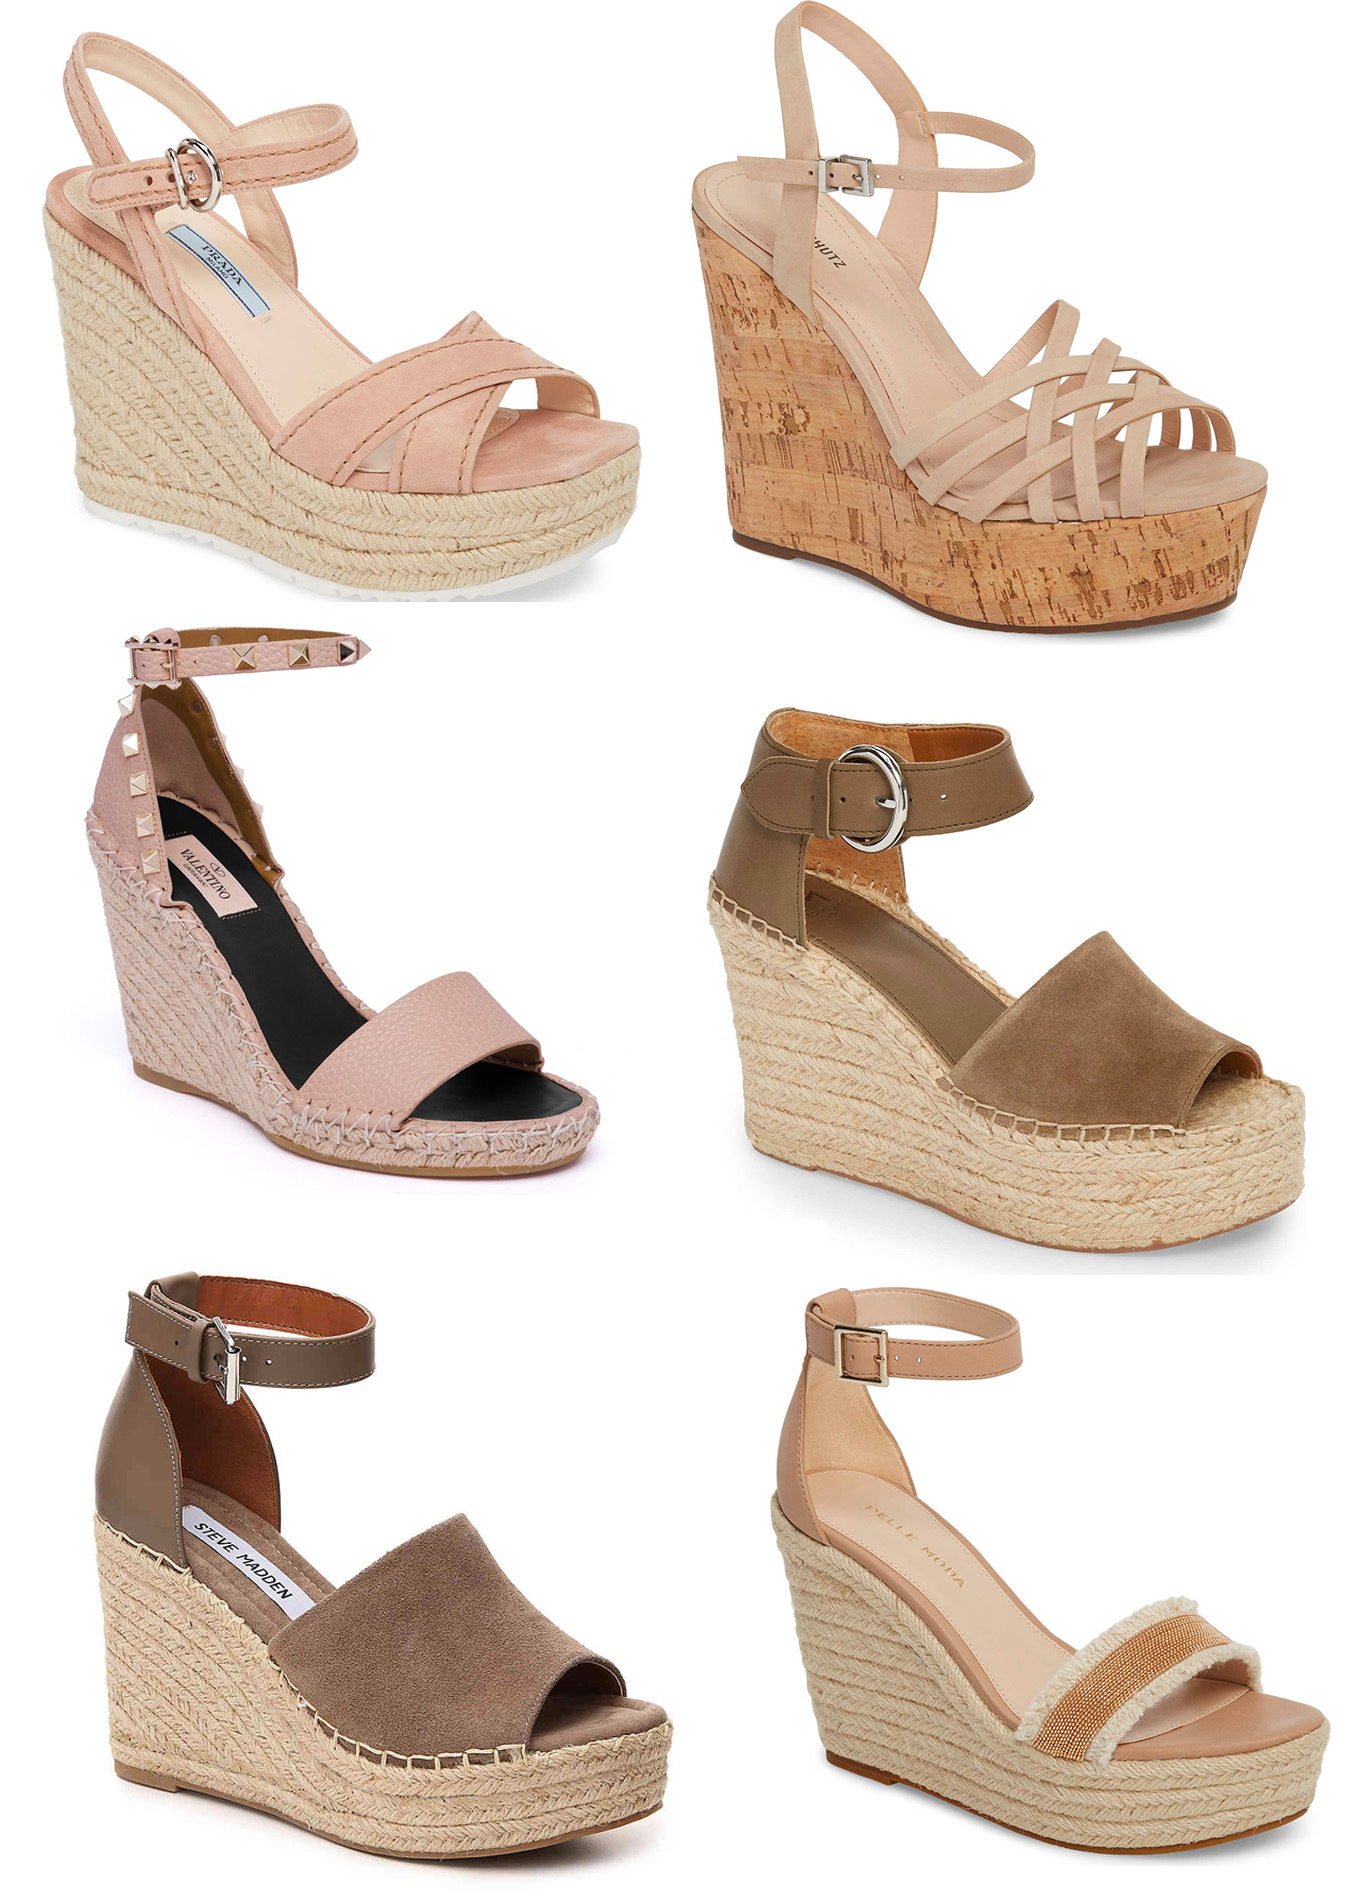 Ridgely Brode is looking for a neutral wedge to wear with jeans to dresses and finds lots of good options on her blog, Ridgely's Radar. The hard part is picking just one pair!